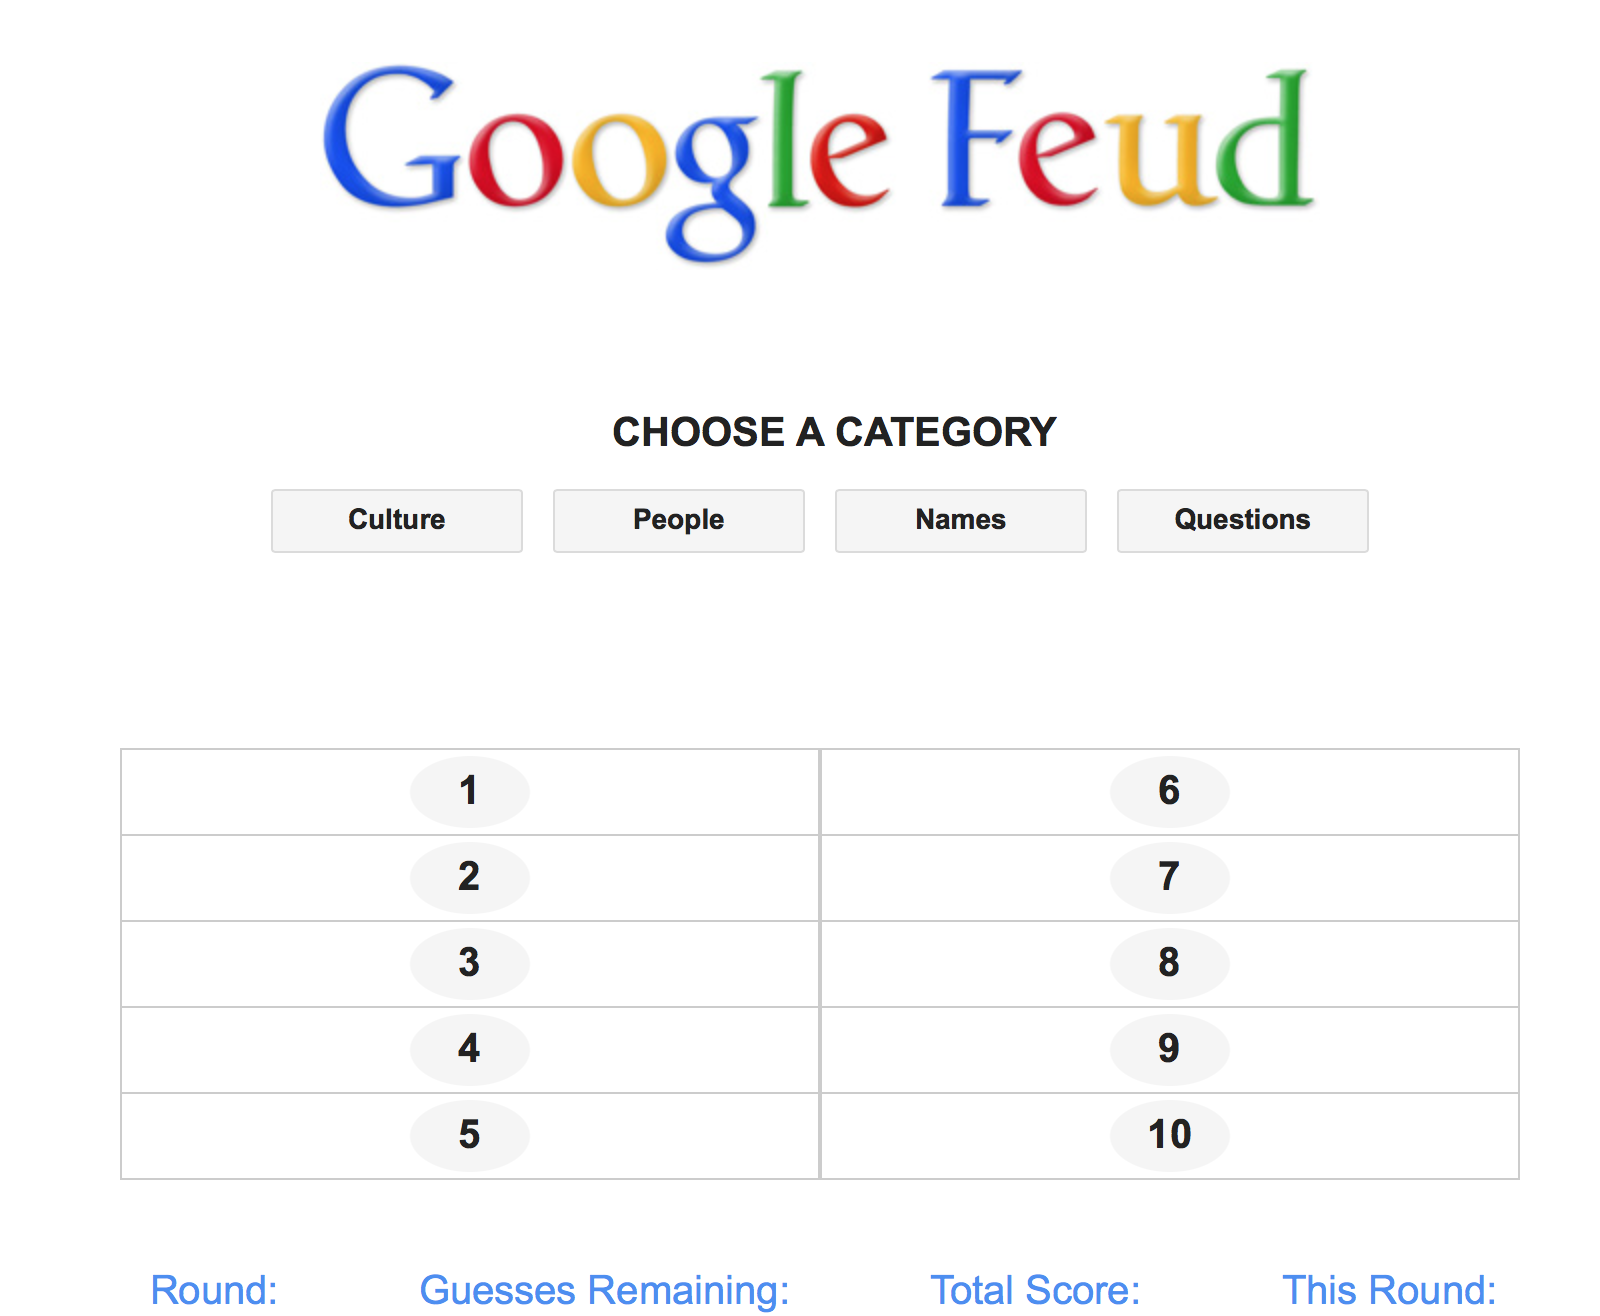 google feud answer how to build a